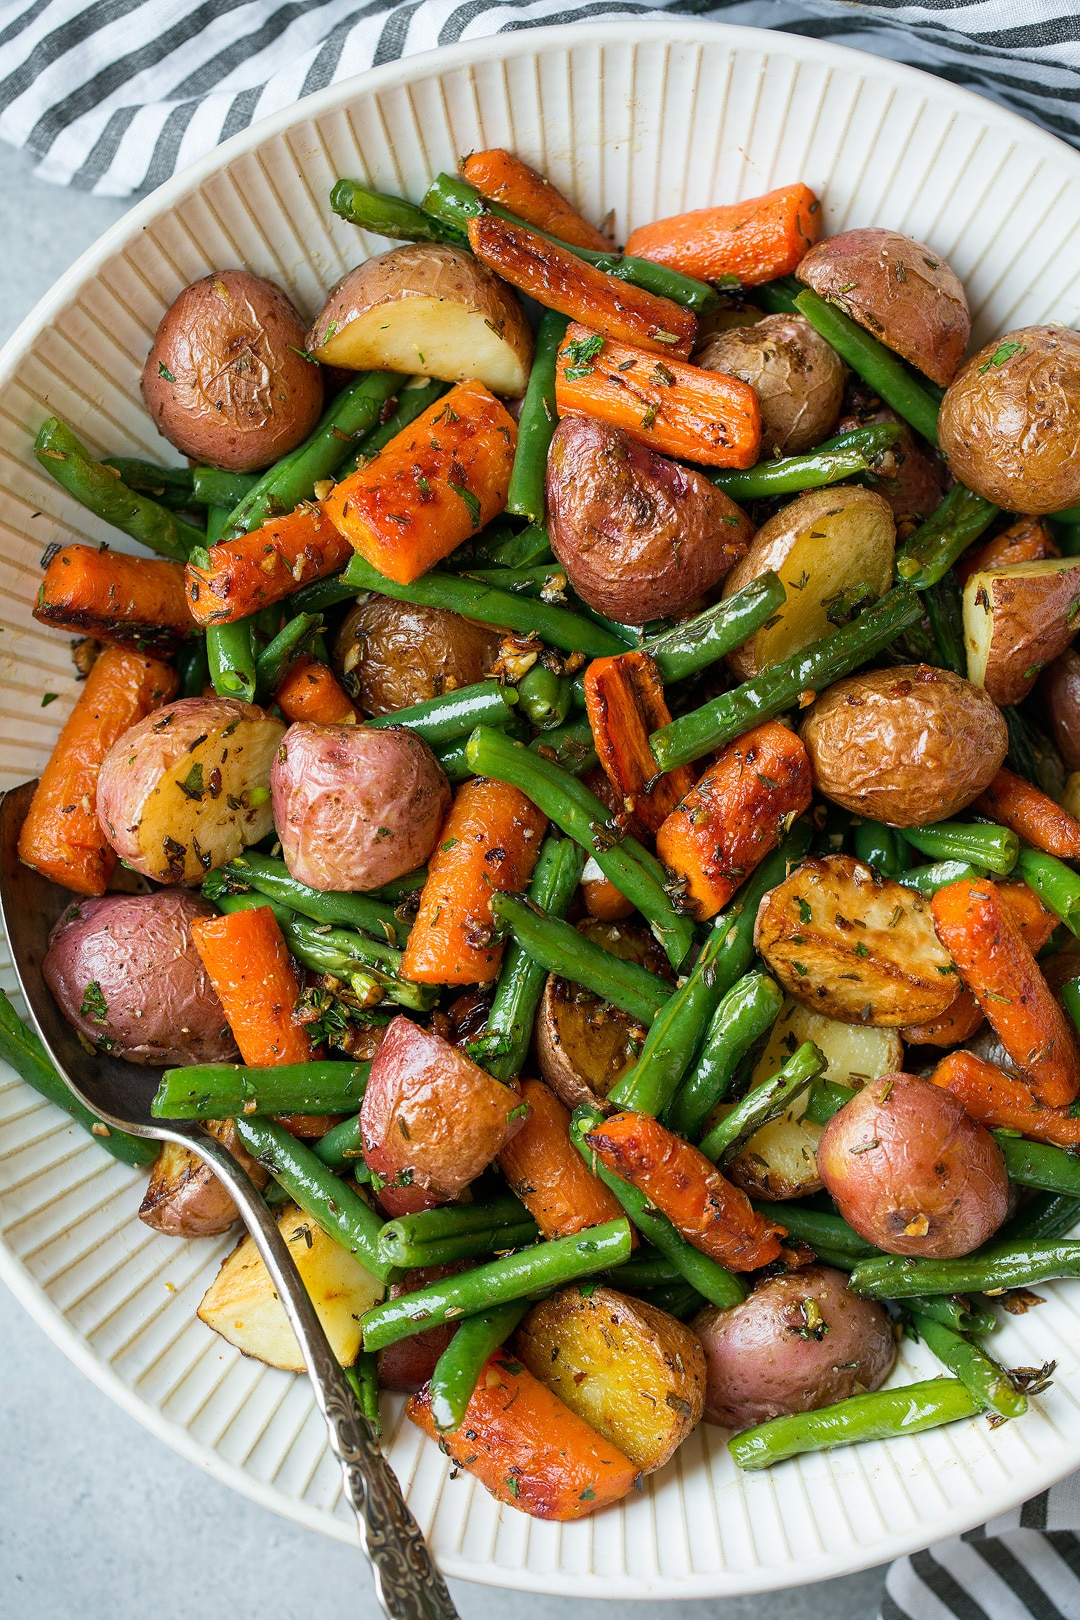 Roasted Vegetables With Garlic And Herbs Cooking Classy